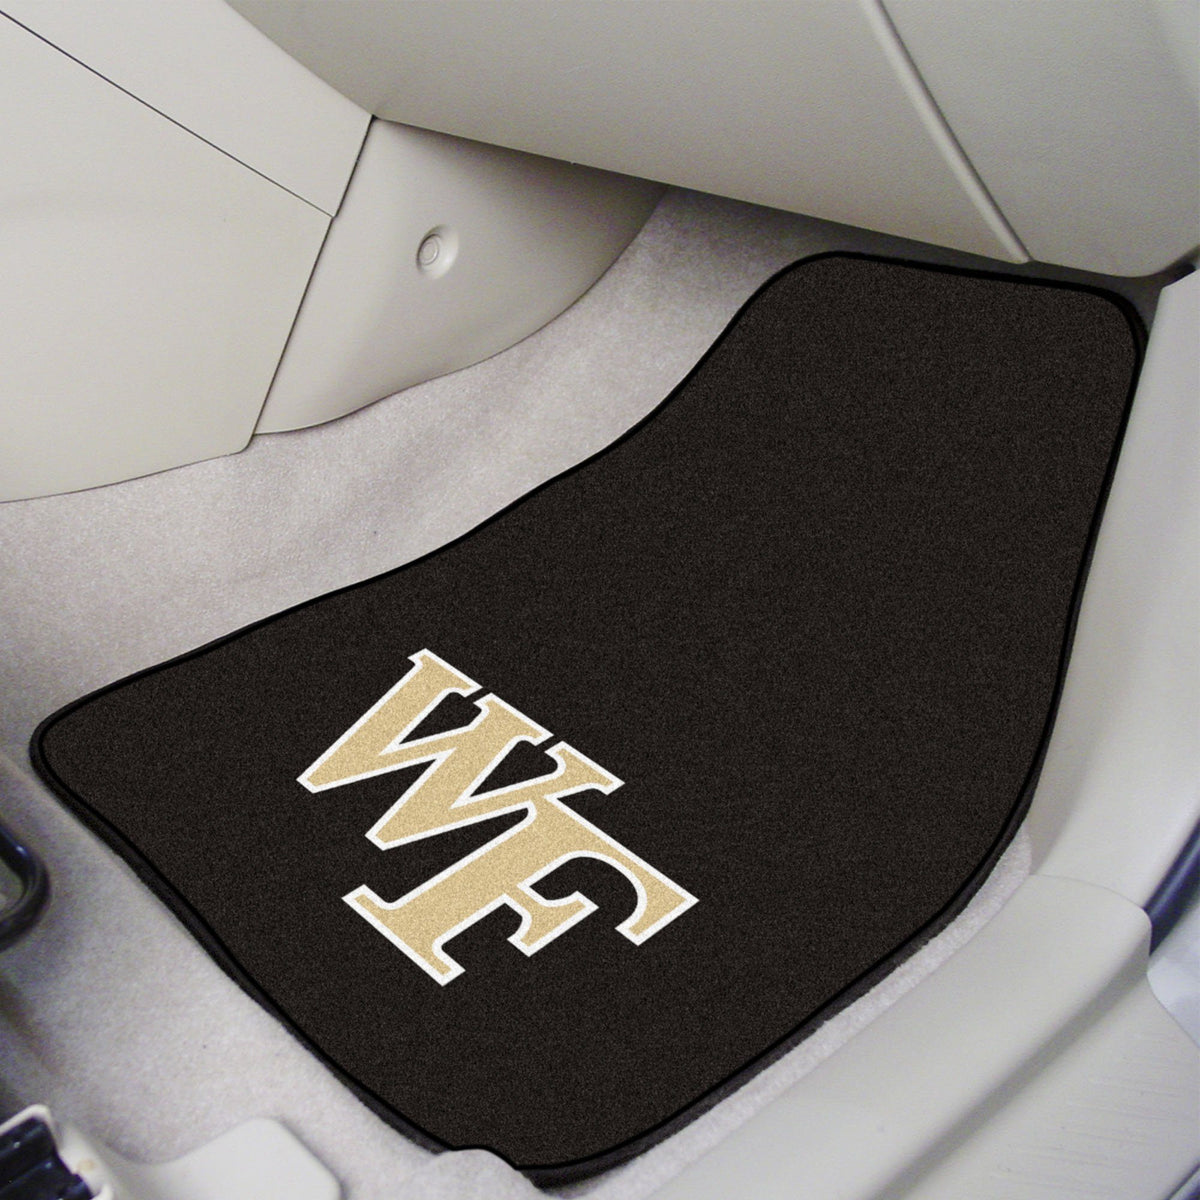 Collegiate - Carpet Car Mat, 2-Piece Set: T - Z Collegiate Car Mat, Front Car Mats, 2-pc Carpet Car Mat Set, Collegiate, Auto Fan Mats Wake Forest